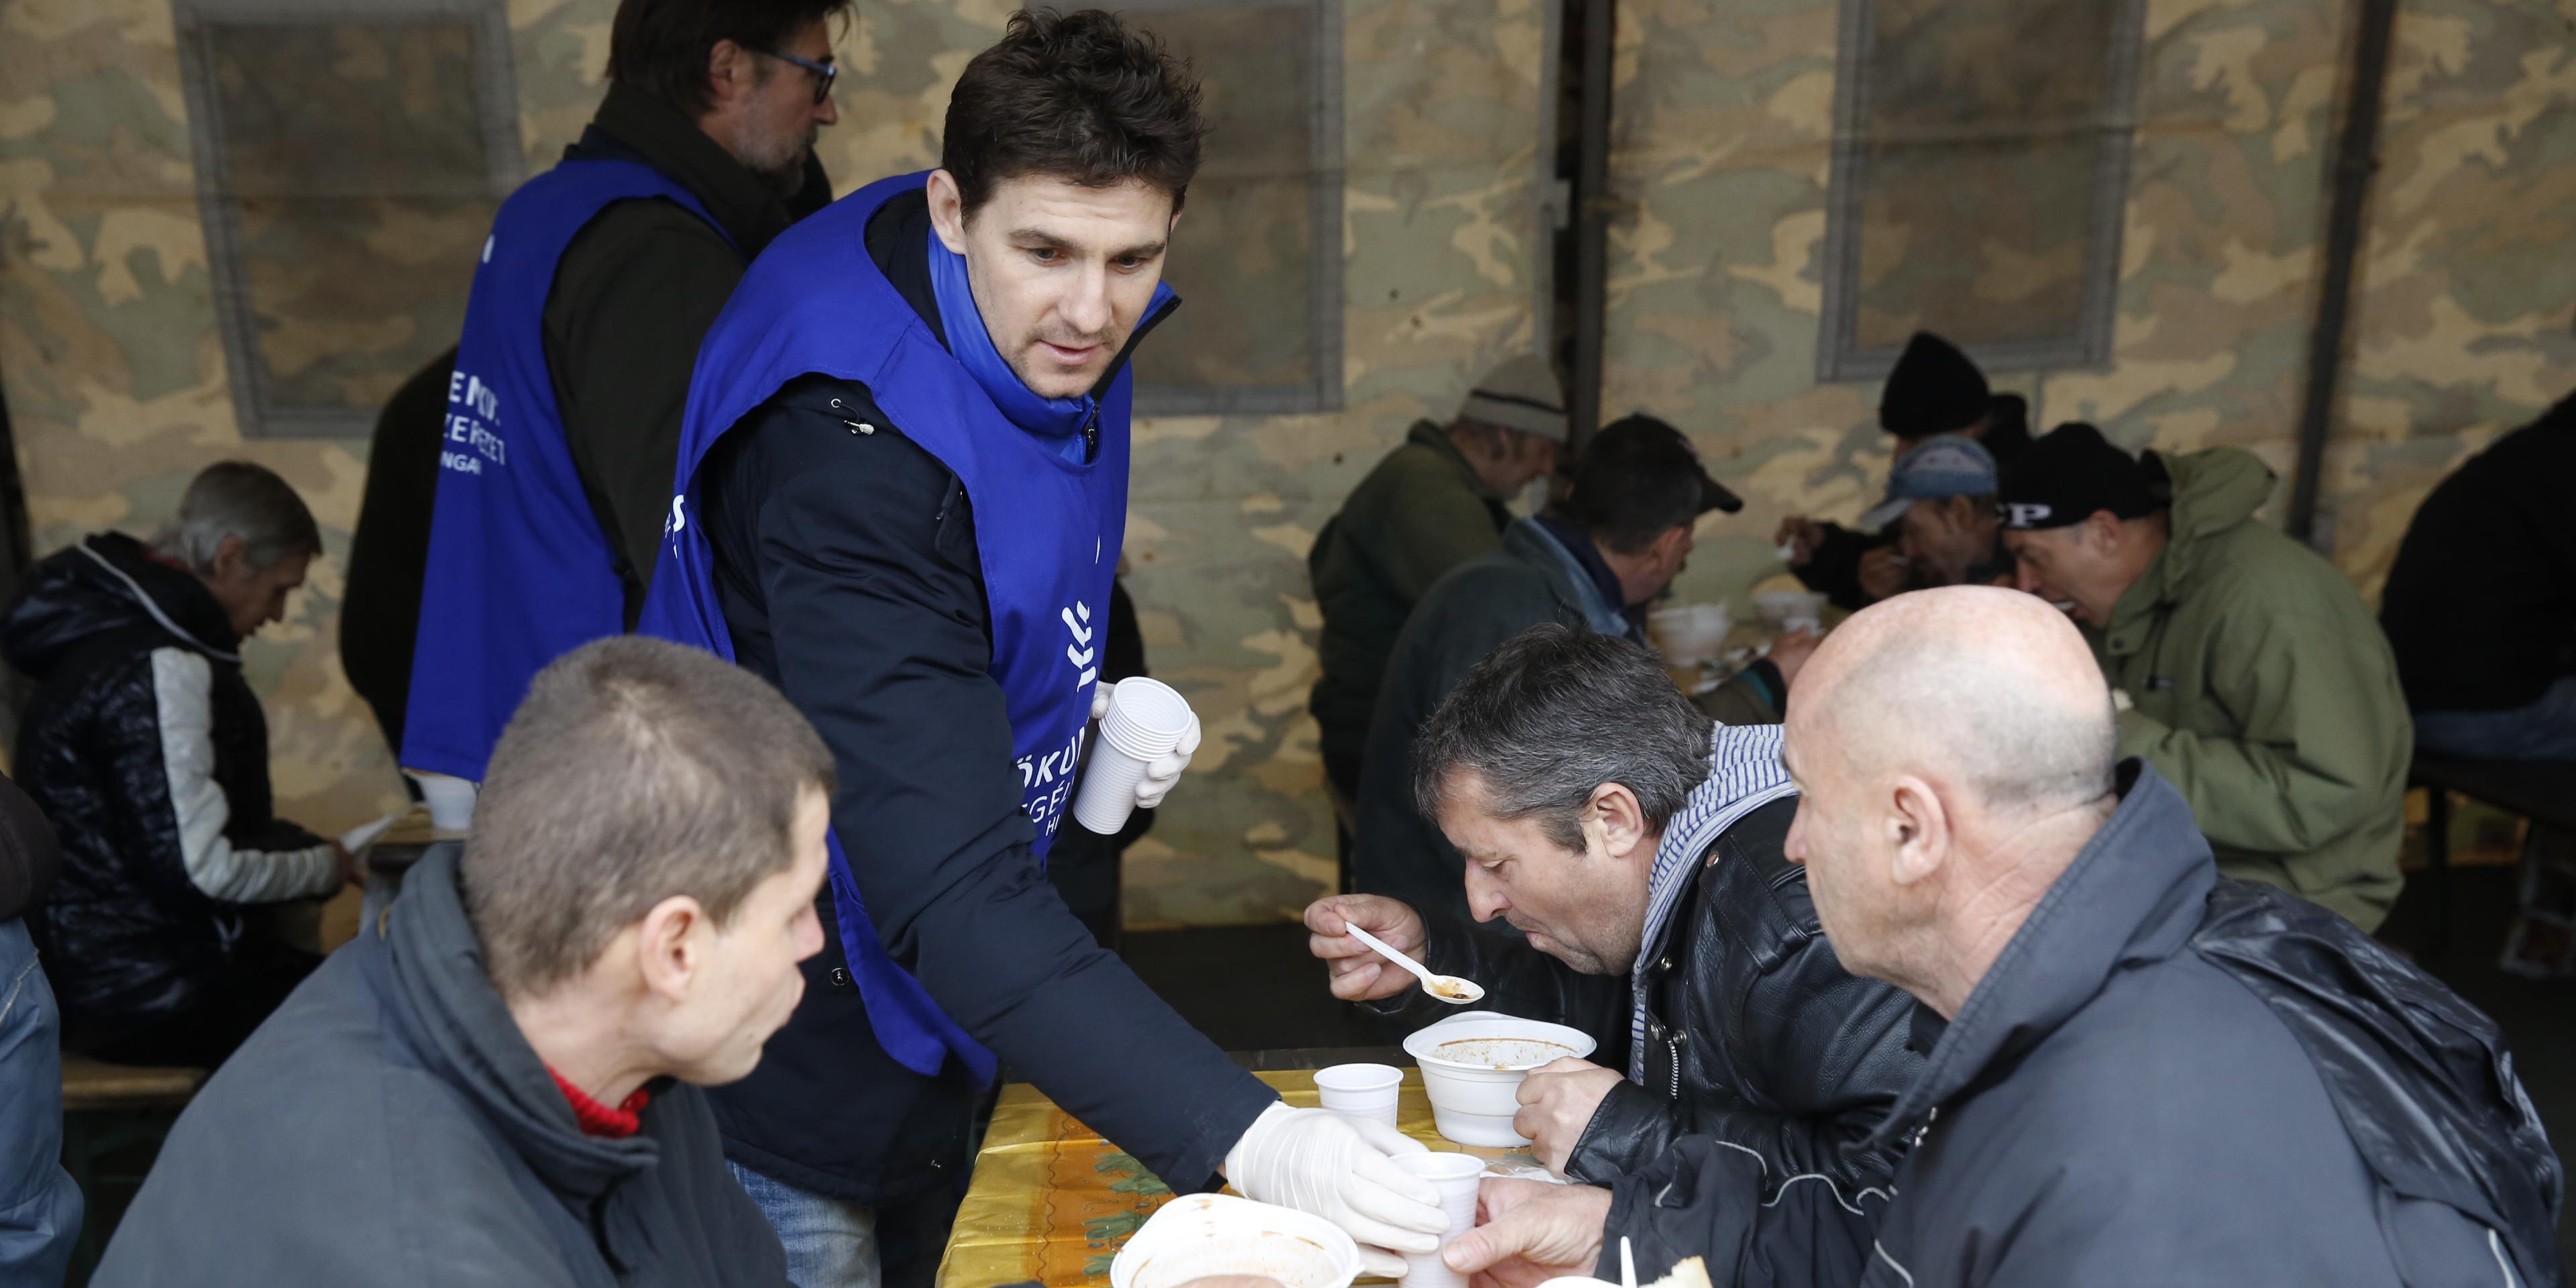 Hungarian Football Players Distribute Hot Meals